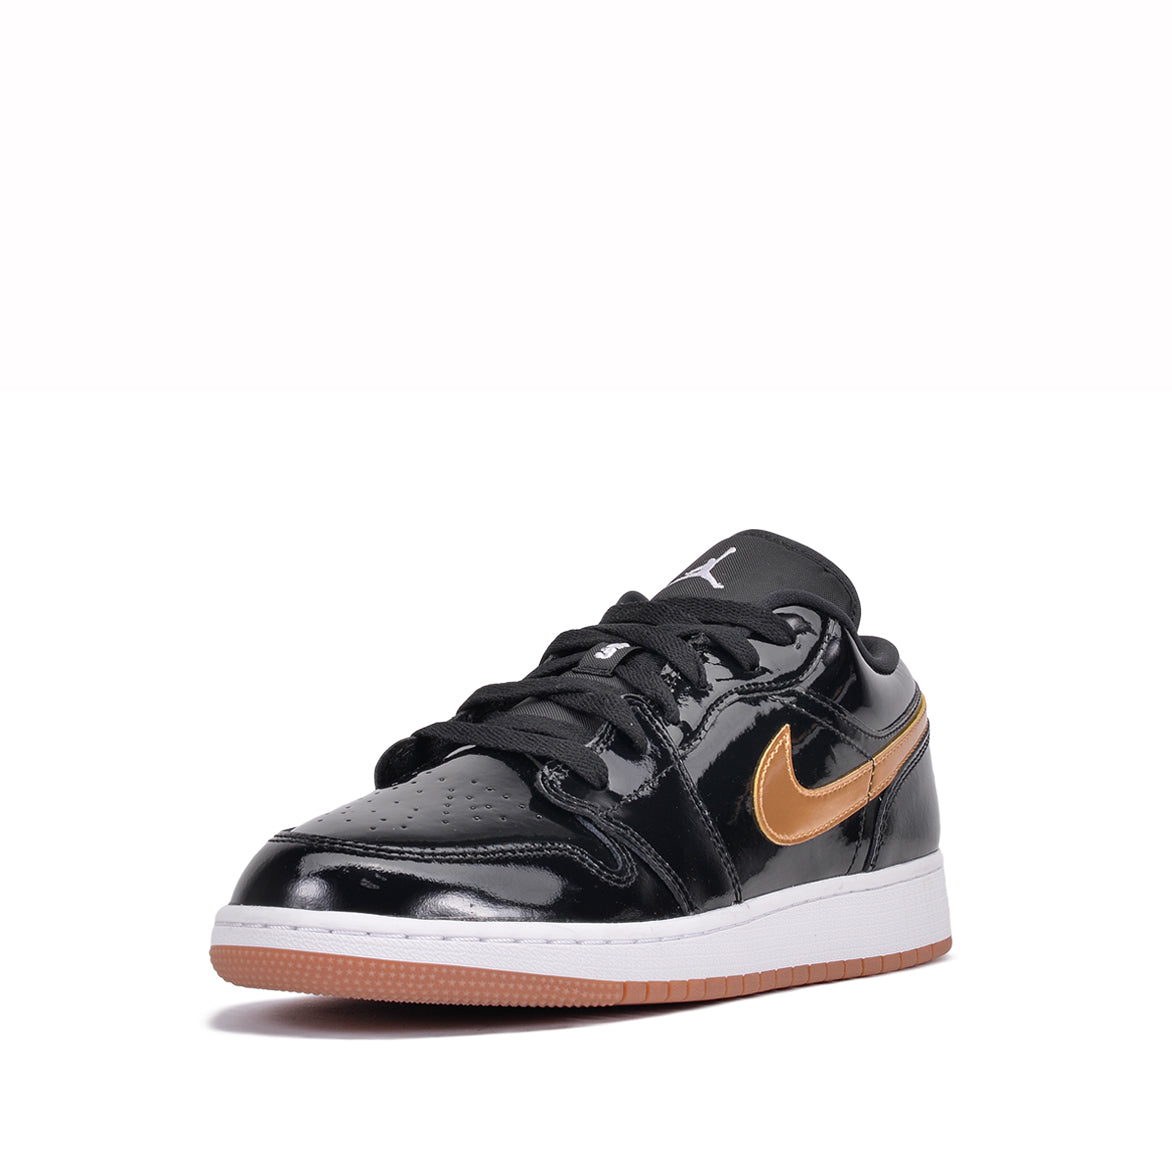 AIR JORDAN 1 LOW (GG) - BLACK / GOLD